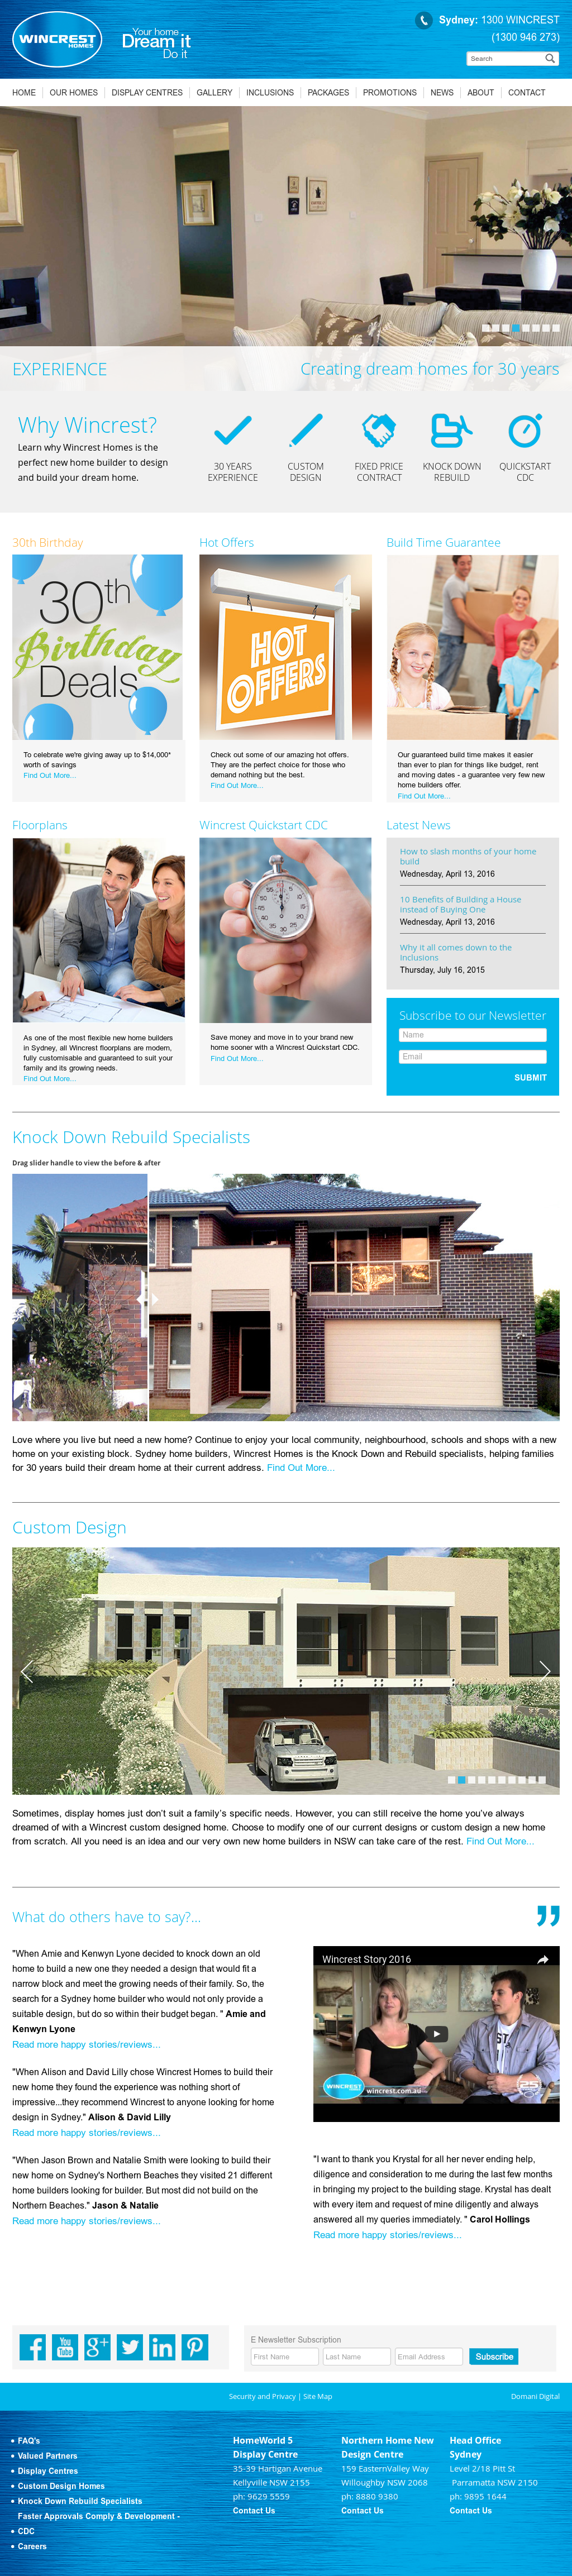 Excellent Narrow Block Home Designs Sydney Pictures Inspiration ...